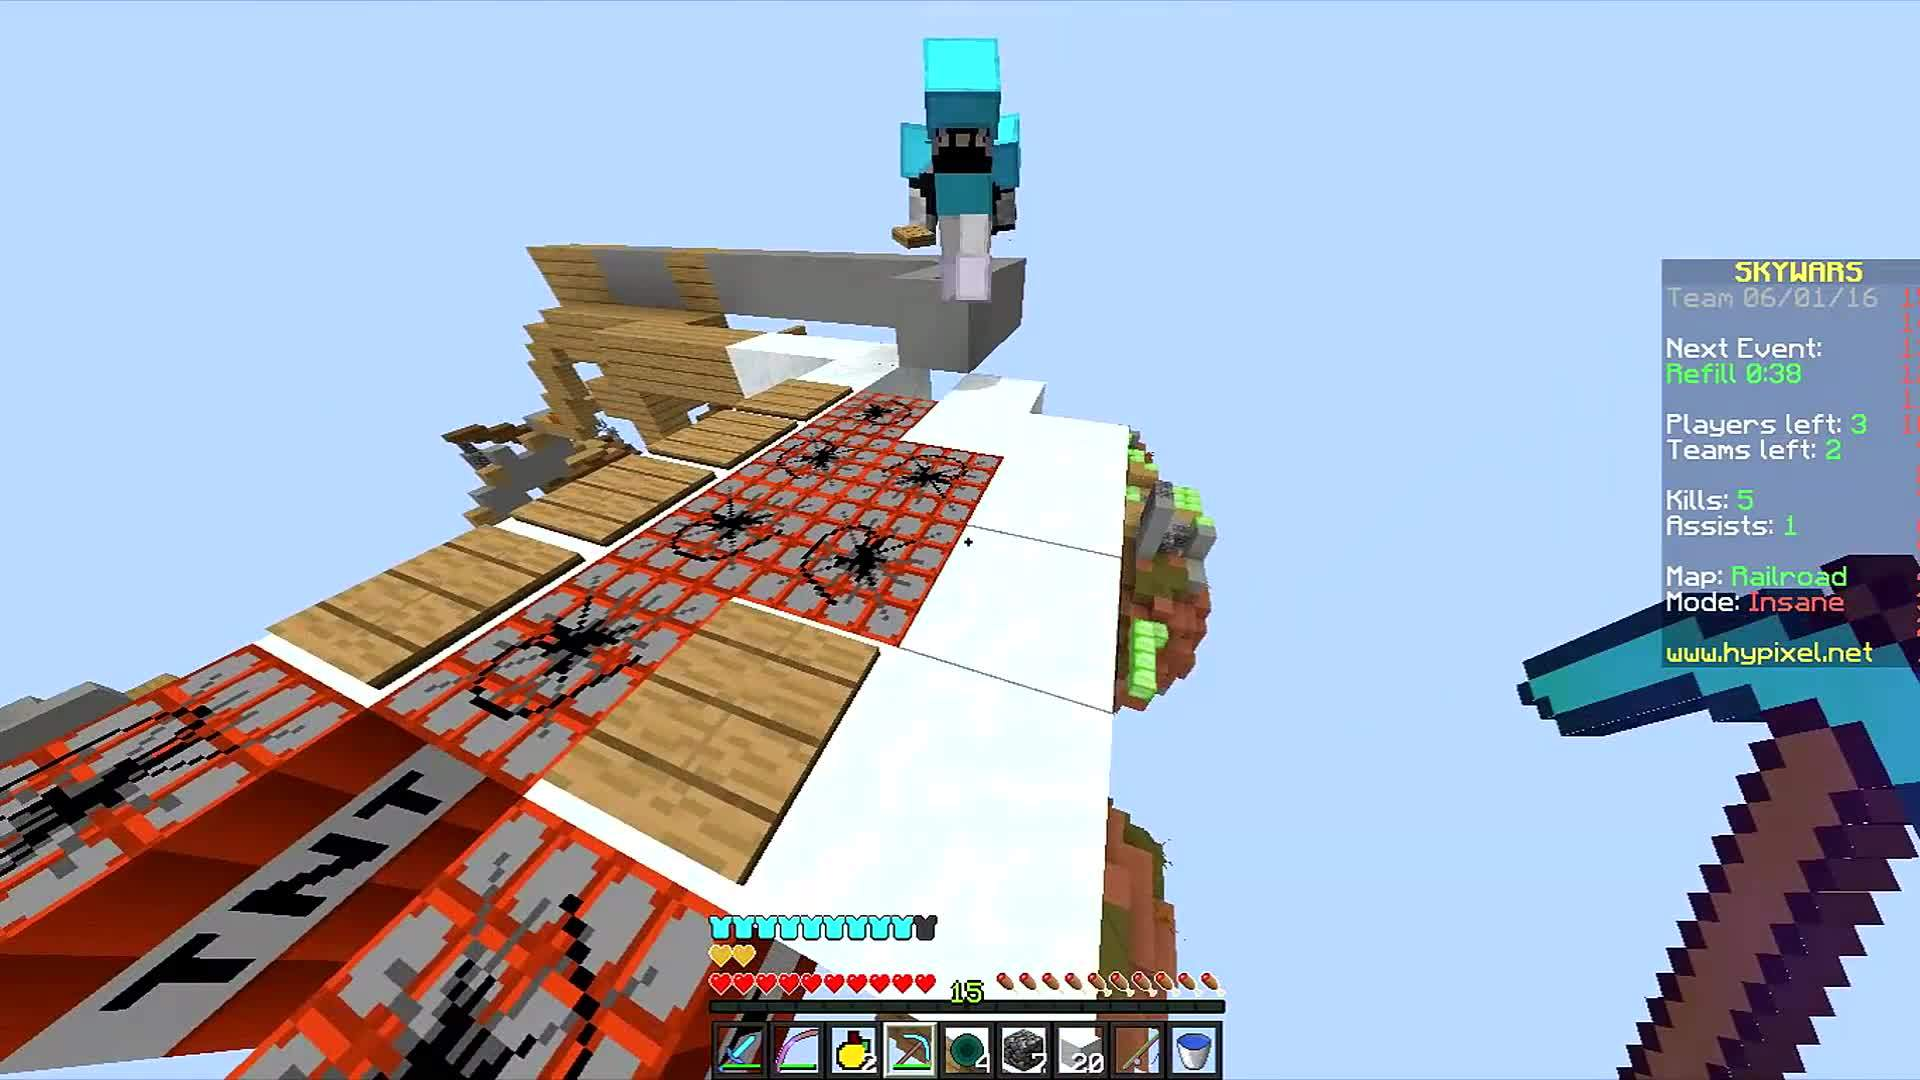 CompetitiveMinecraft, competitiveminecraft, TNT From Above GIFs